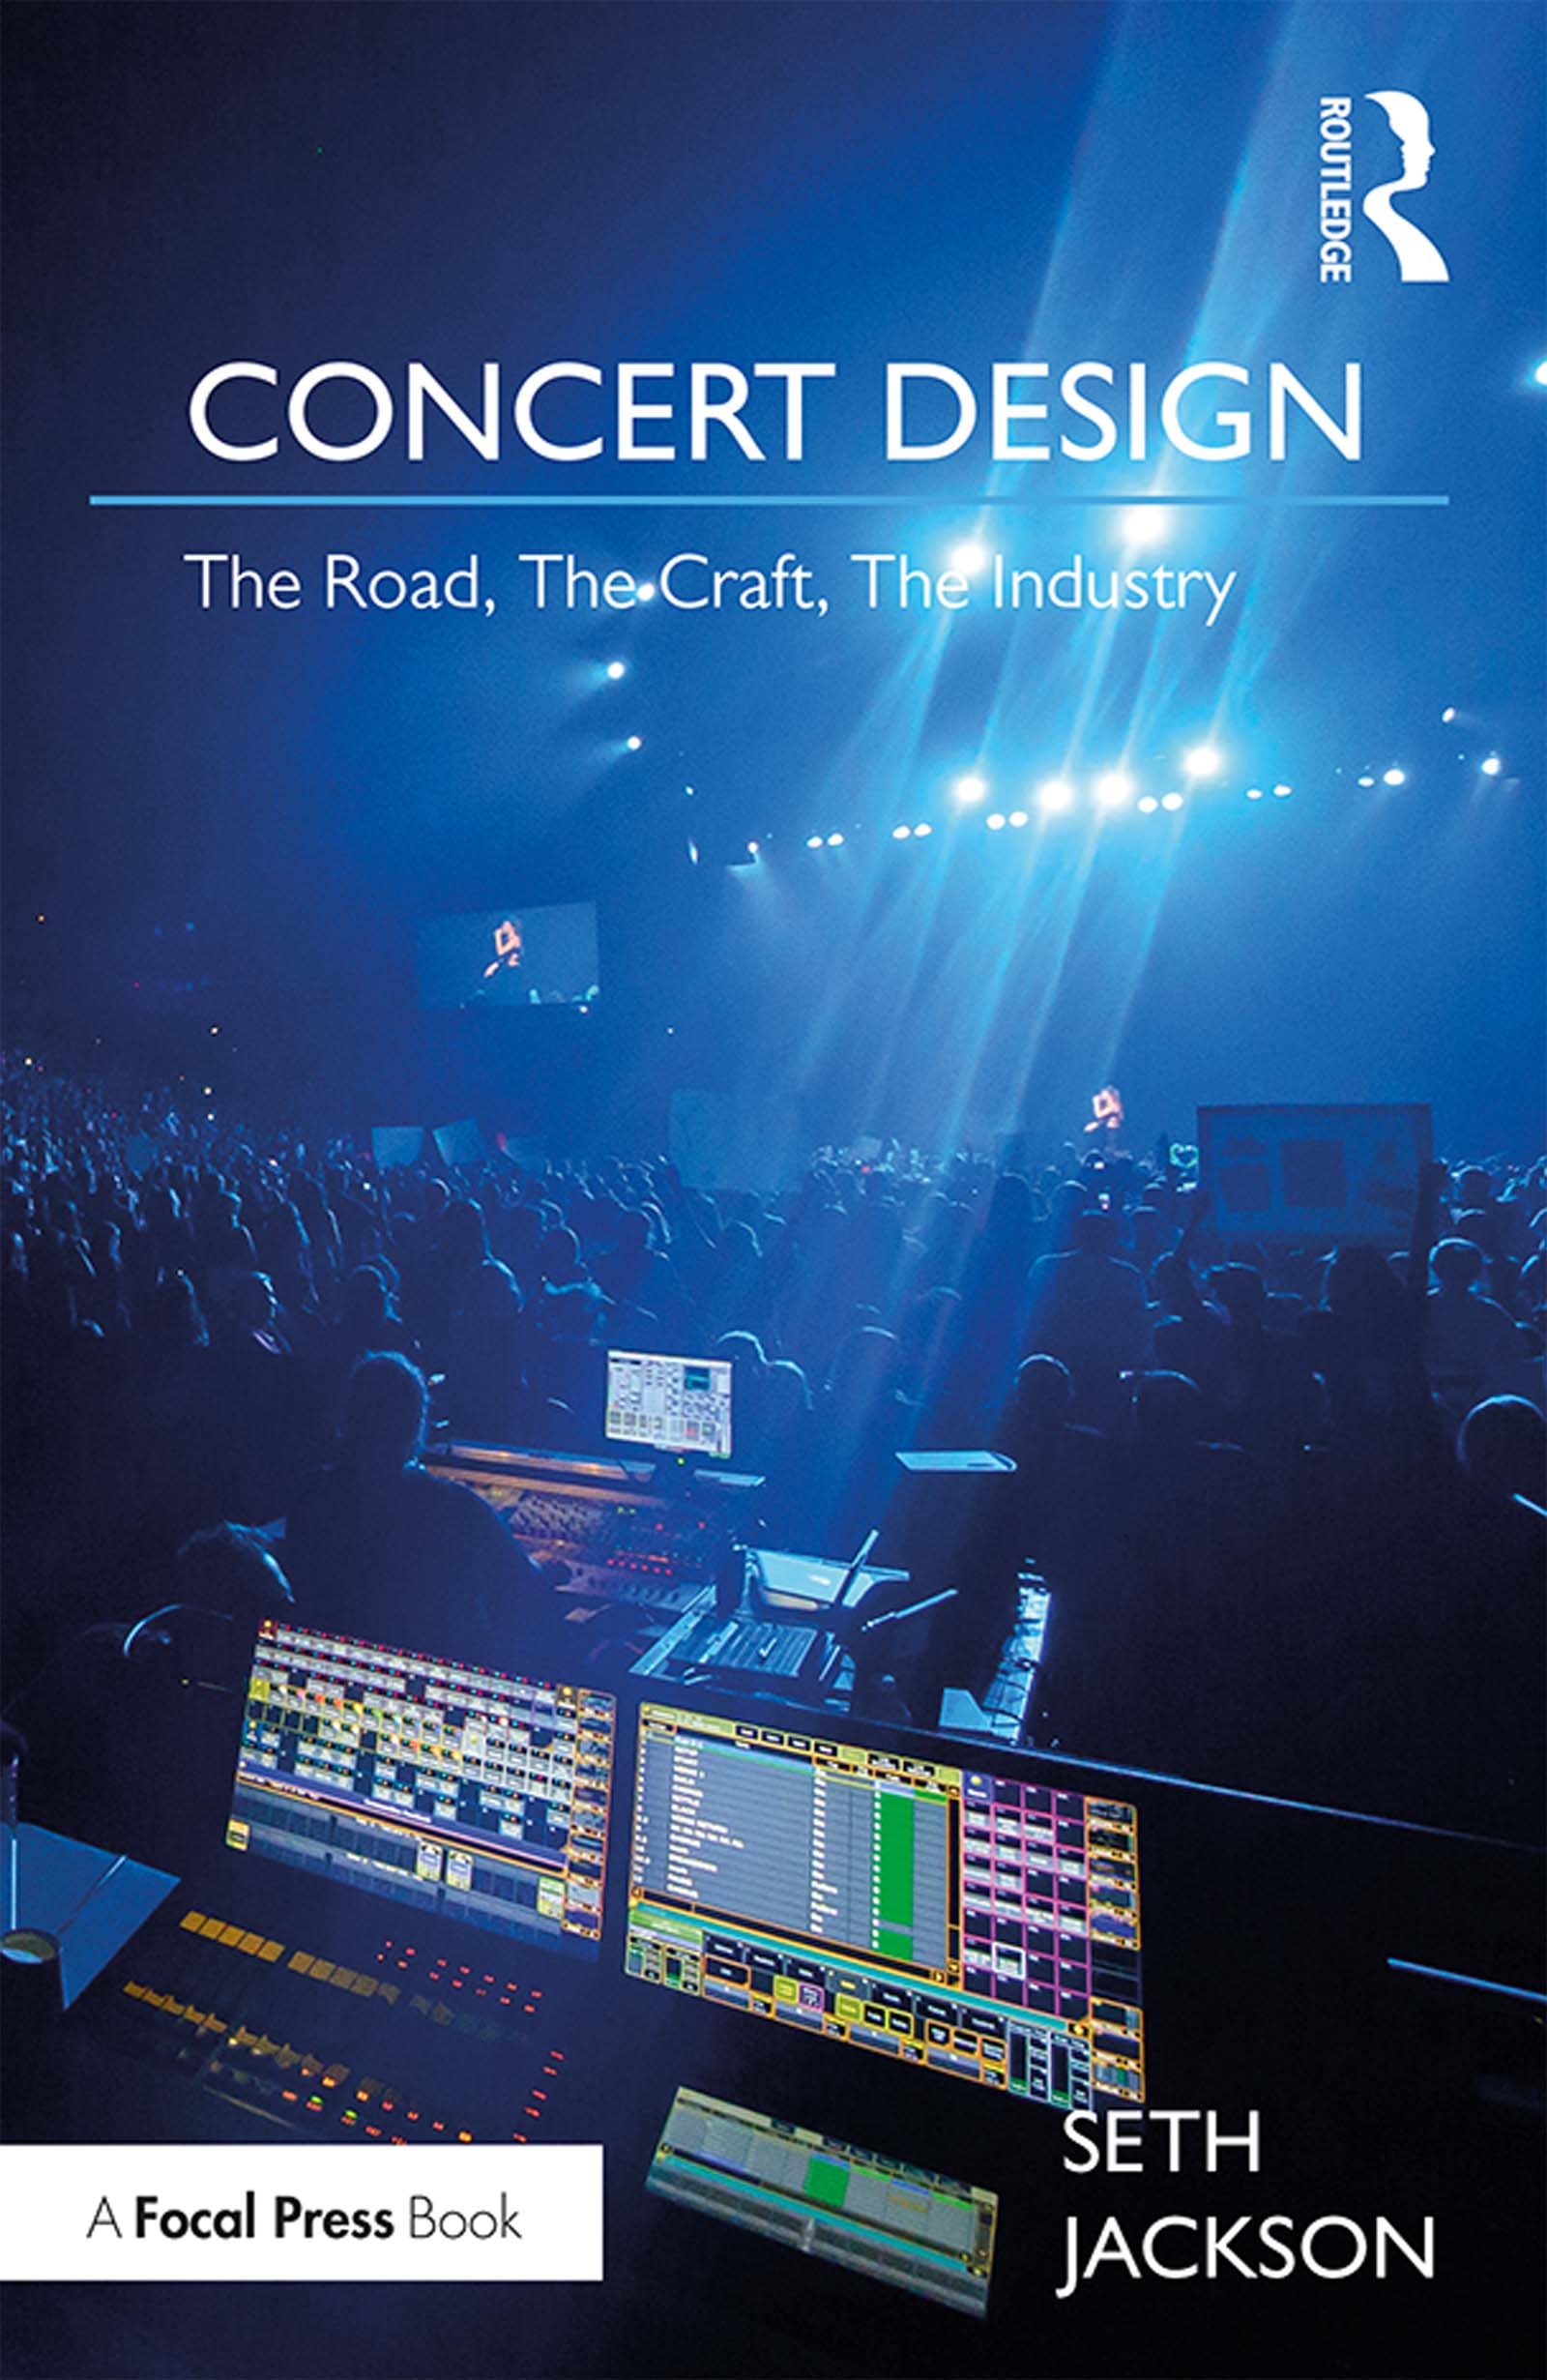 Concert Design: The Road, The Craft, The Industry book cover